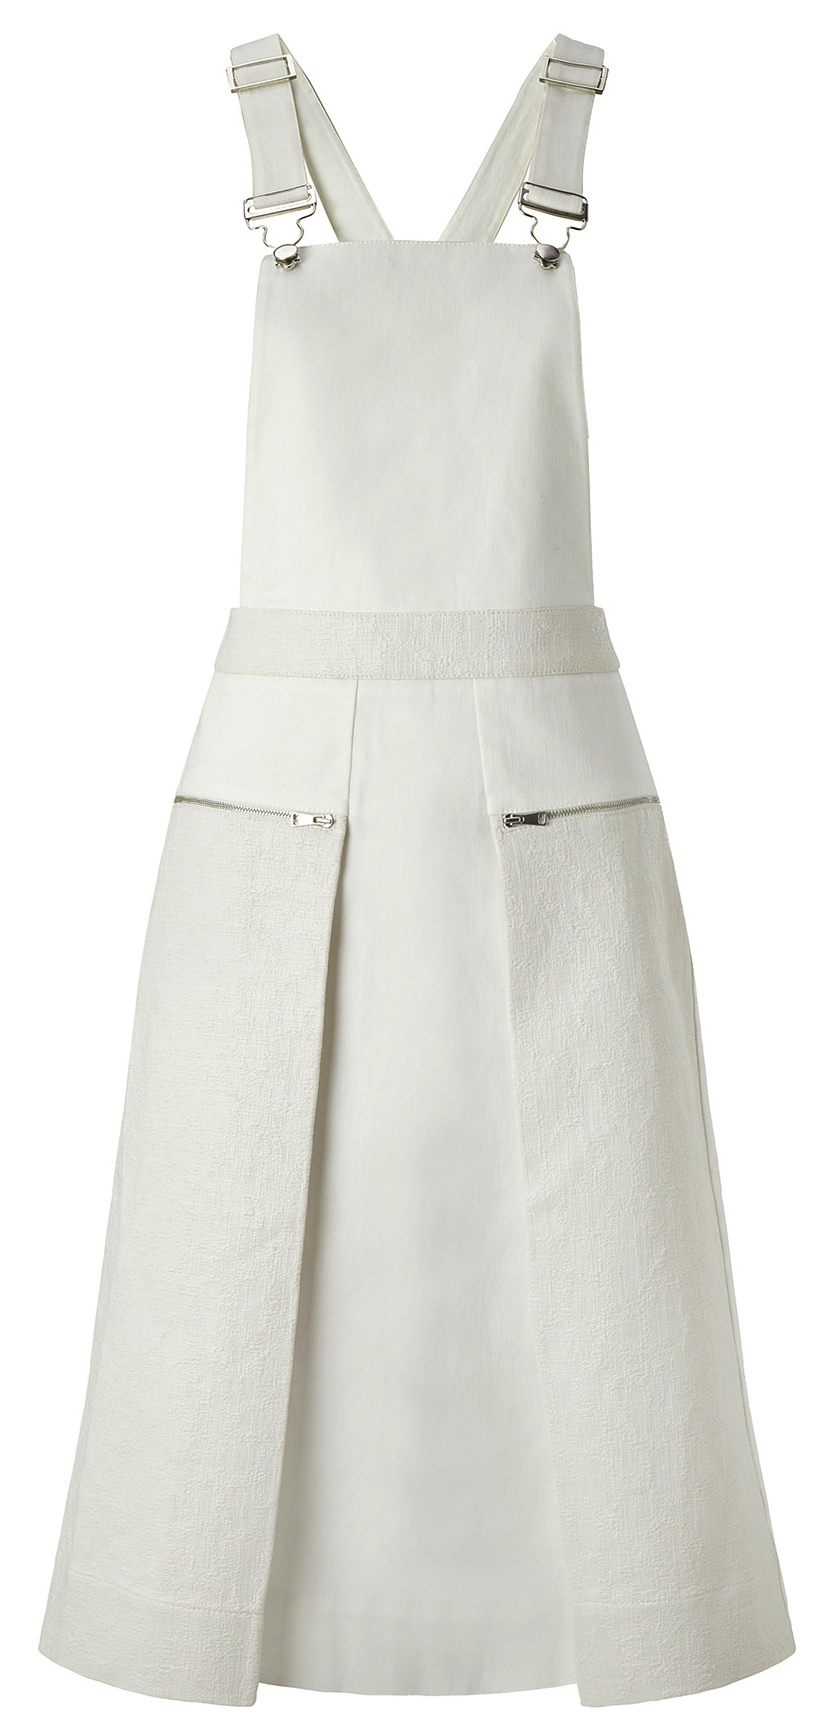 whistles white dungaree dress